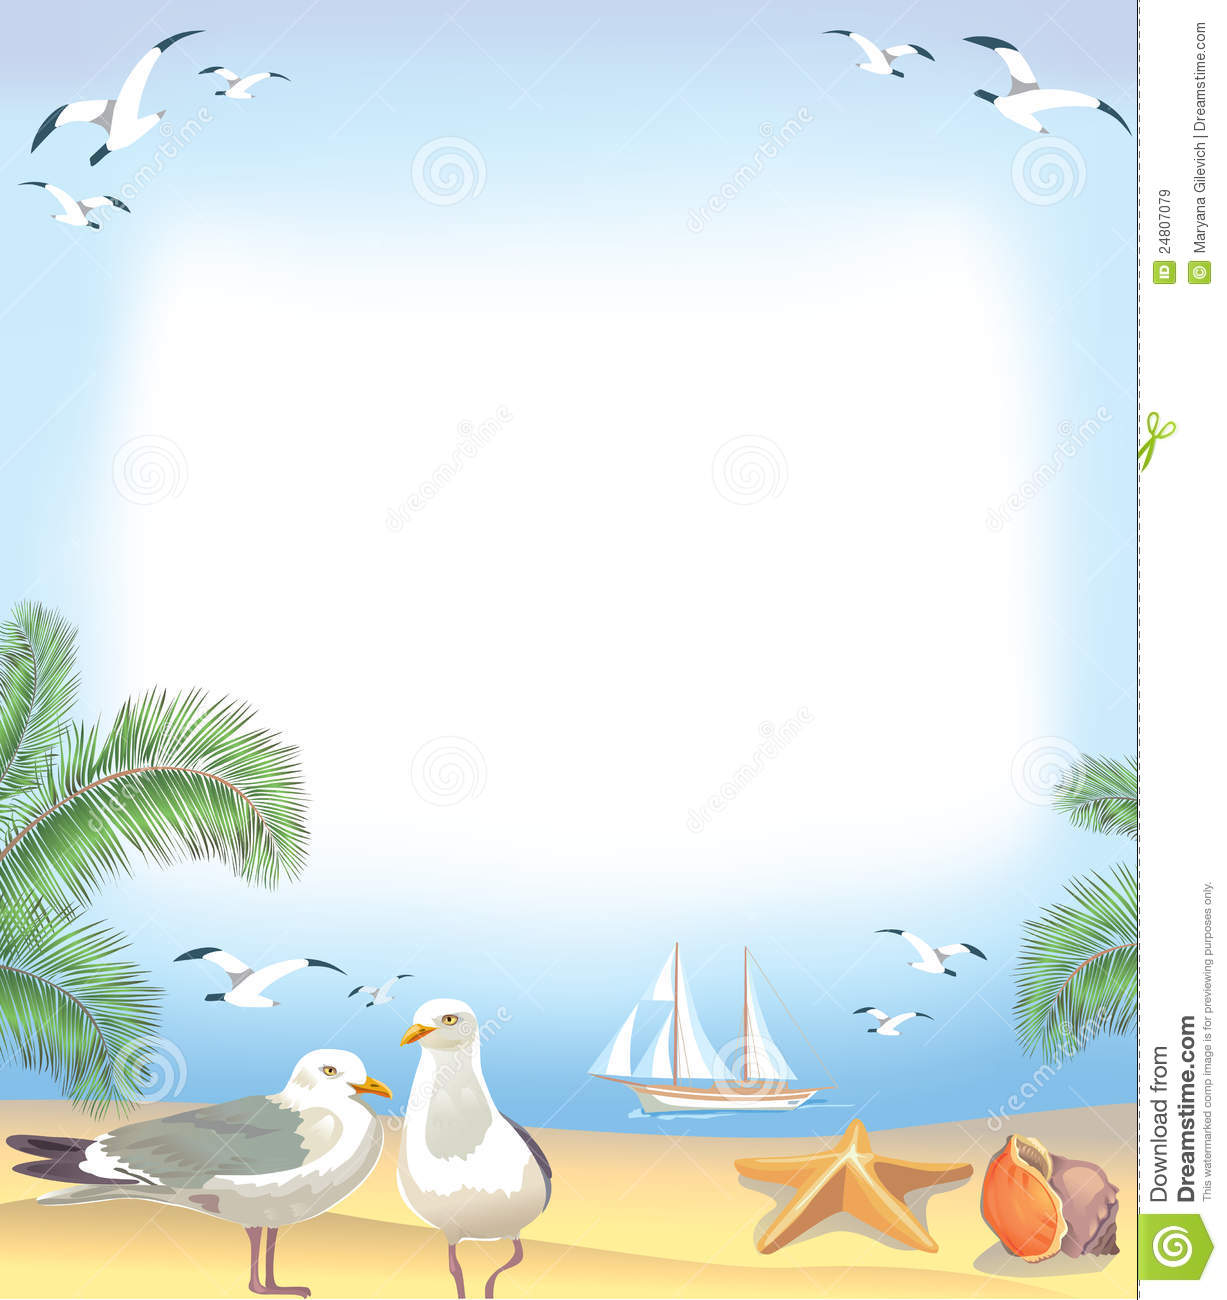 Sea beach frame stock vector. Illustration of wings, seascape - 24807079